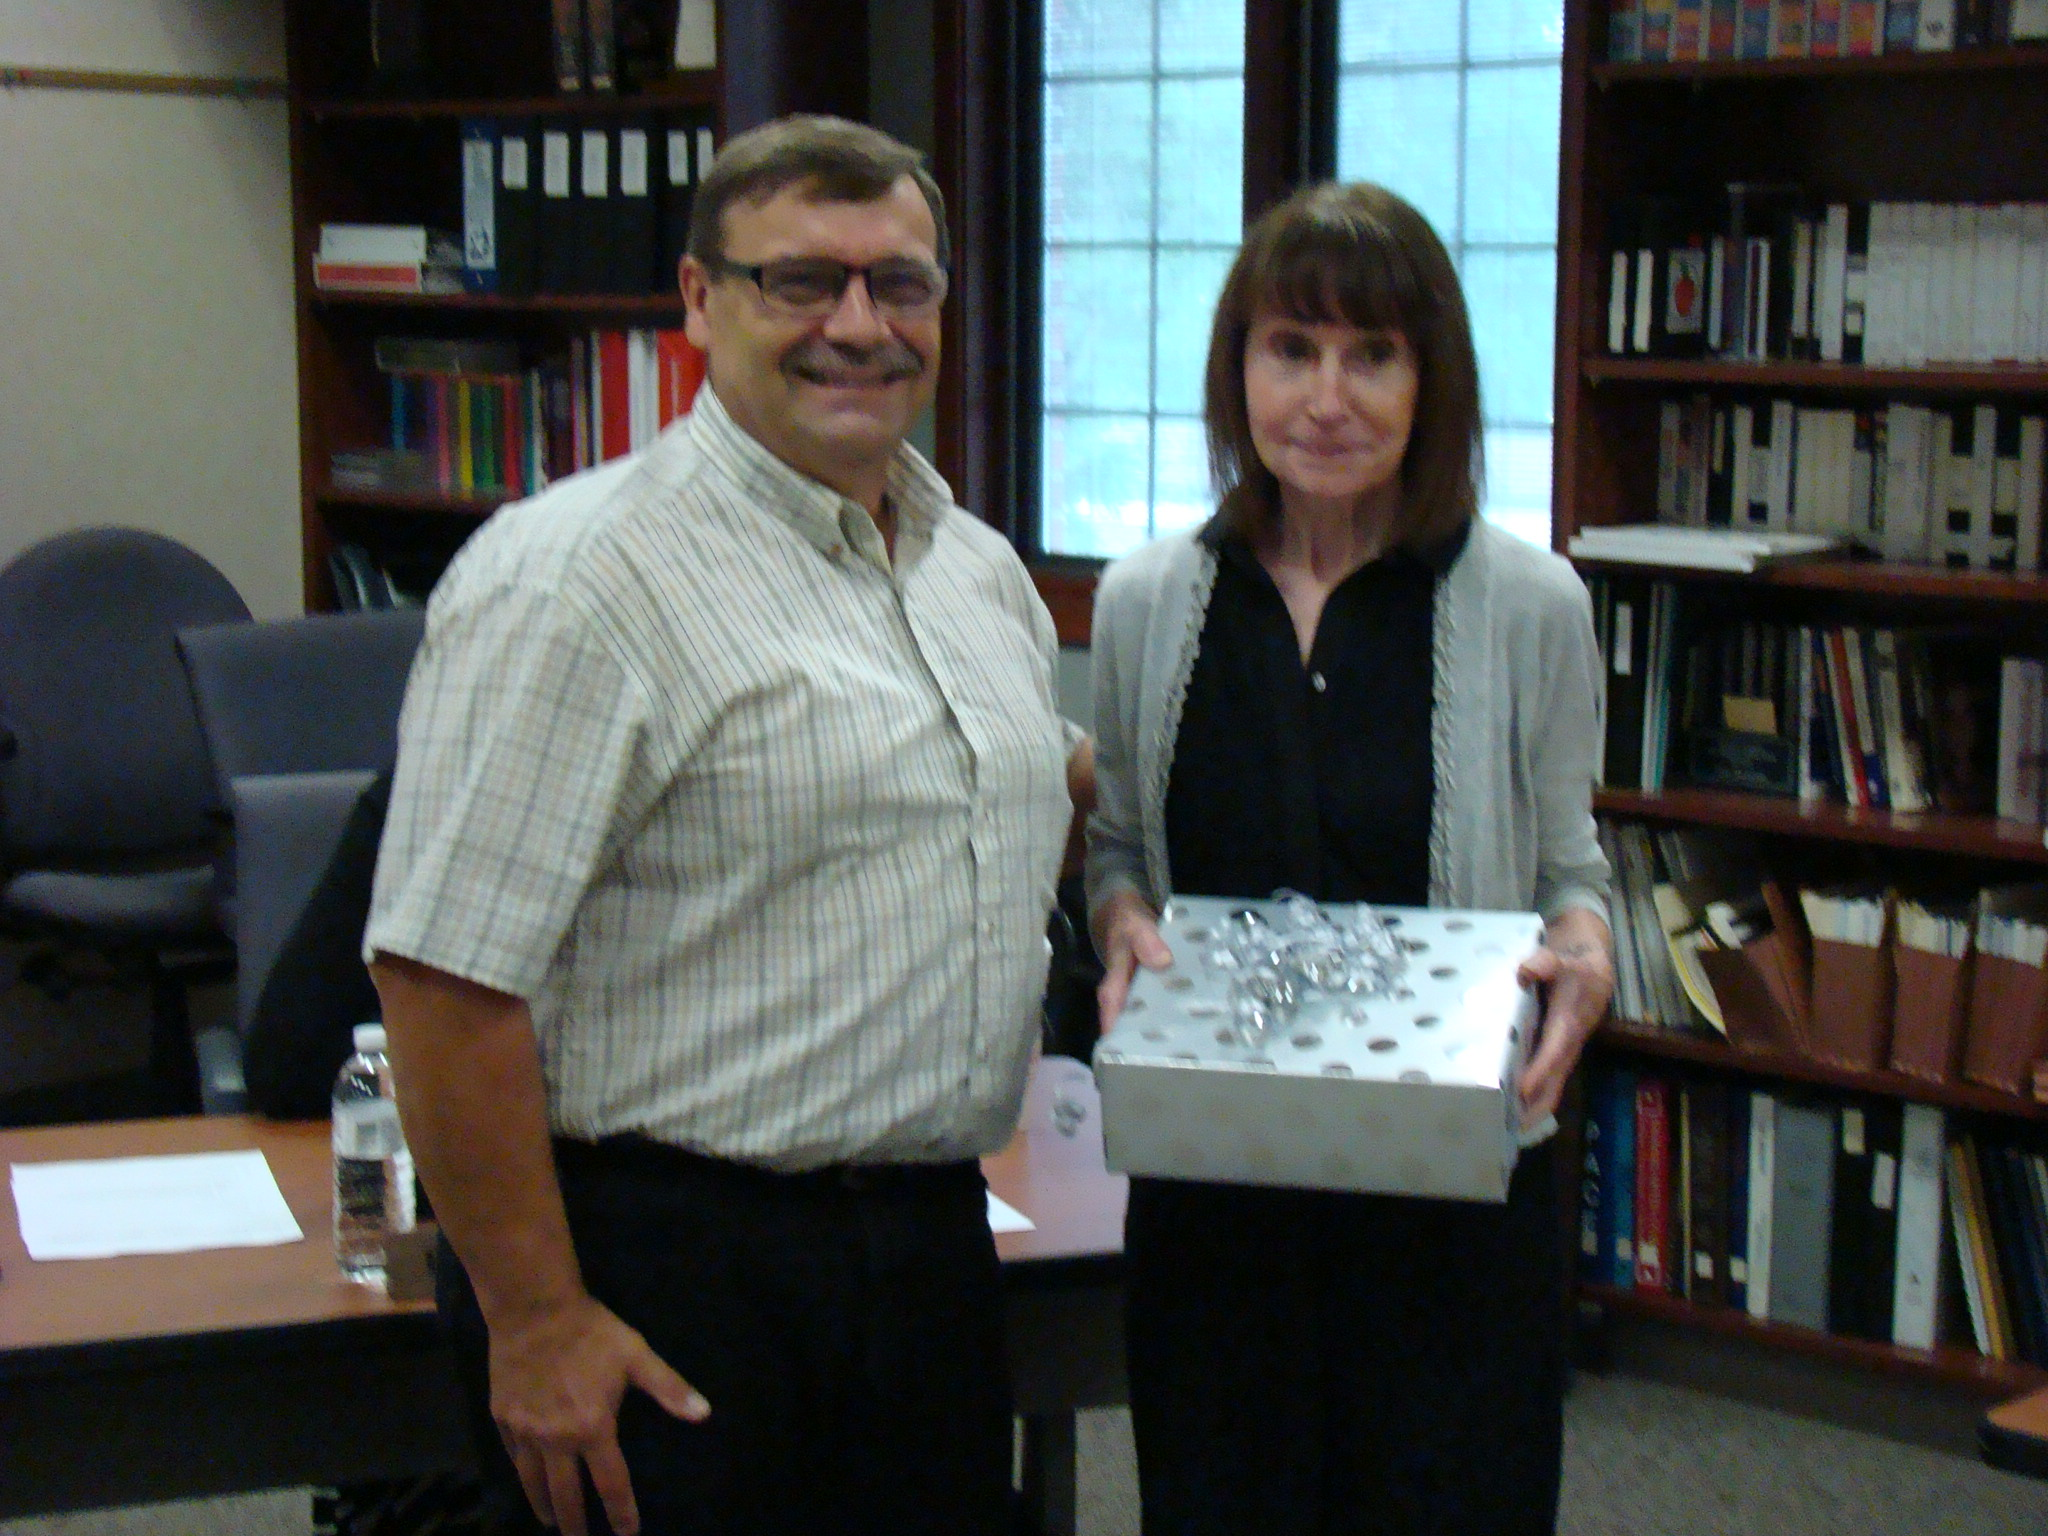 middlebury community schools archived happy retirement photograph of shirley meyer accepting her retirement gift from school board member david black